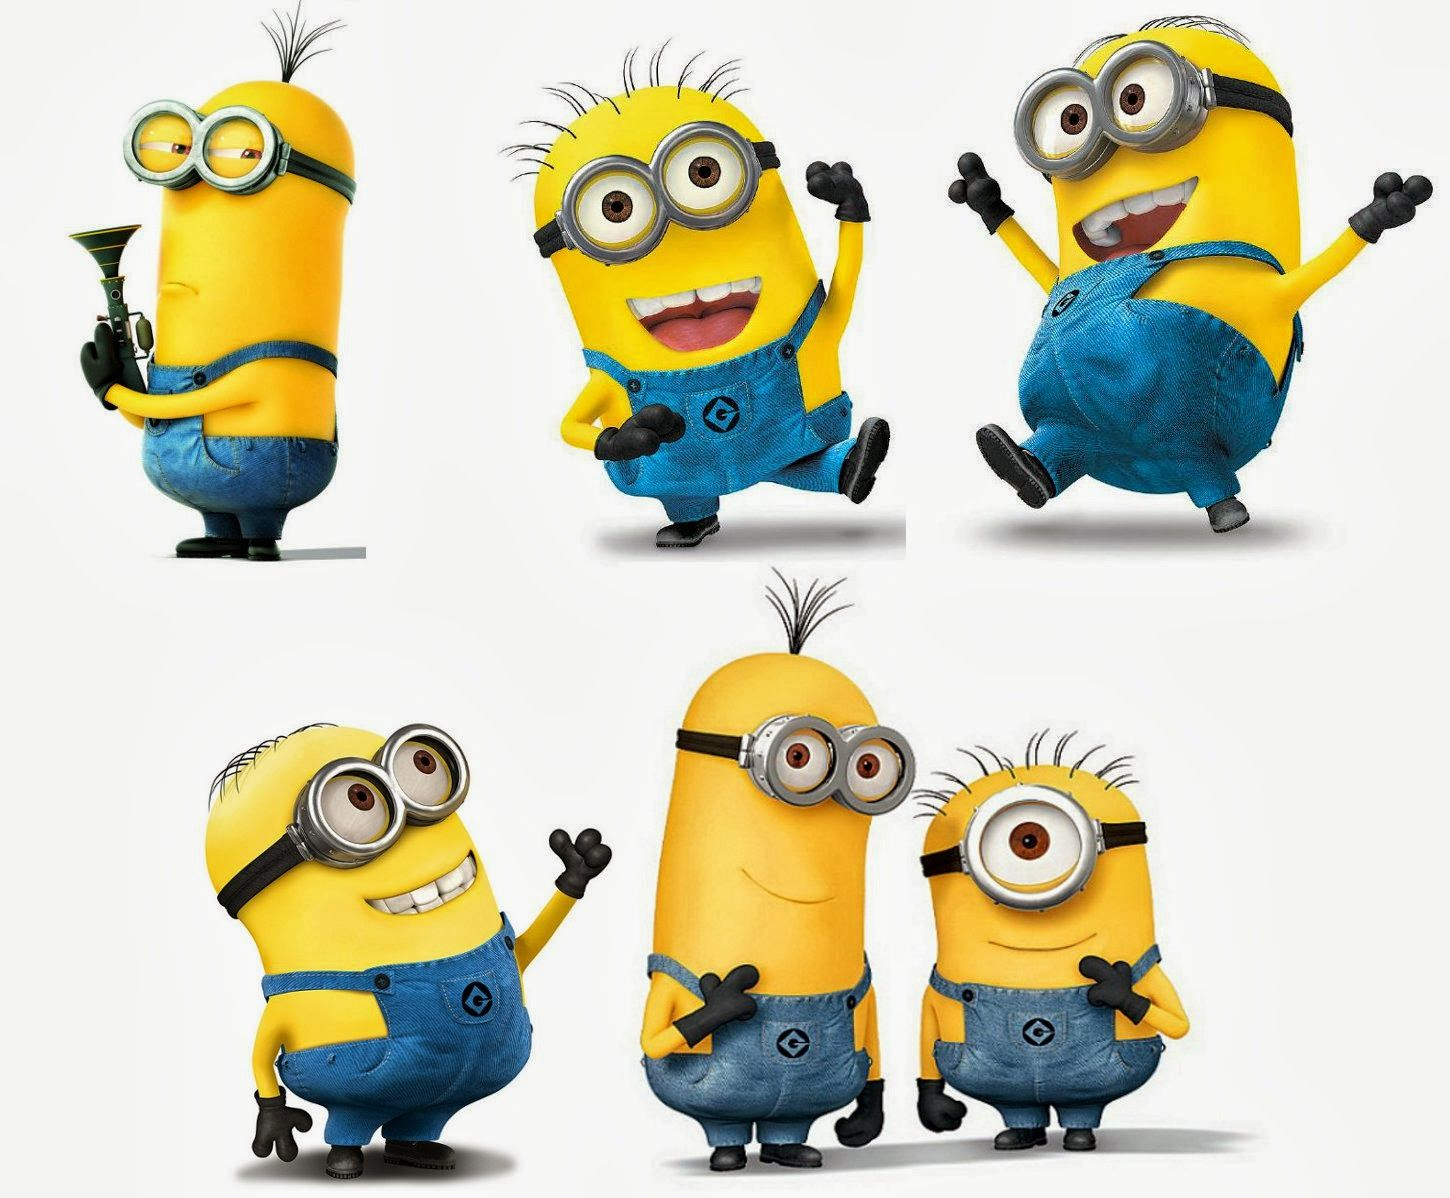 Celebrate The Small Things 9 27 With Images Minion Clipart